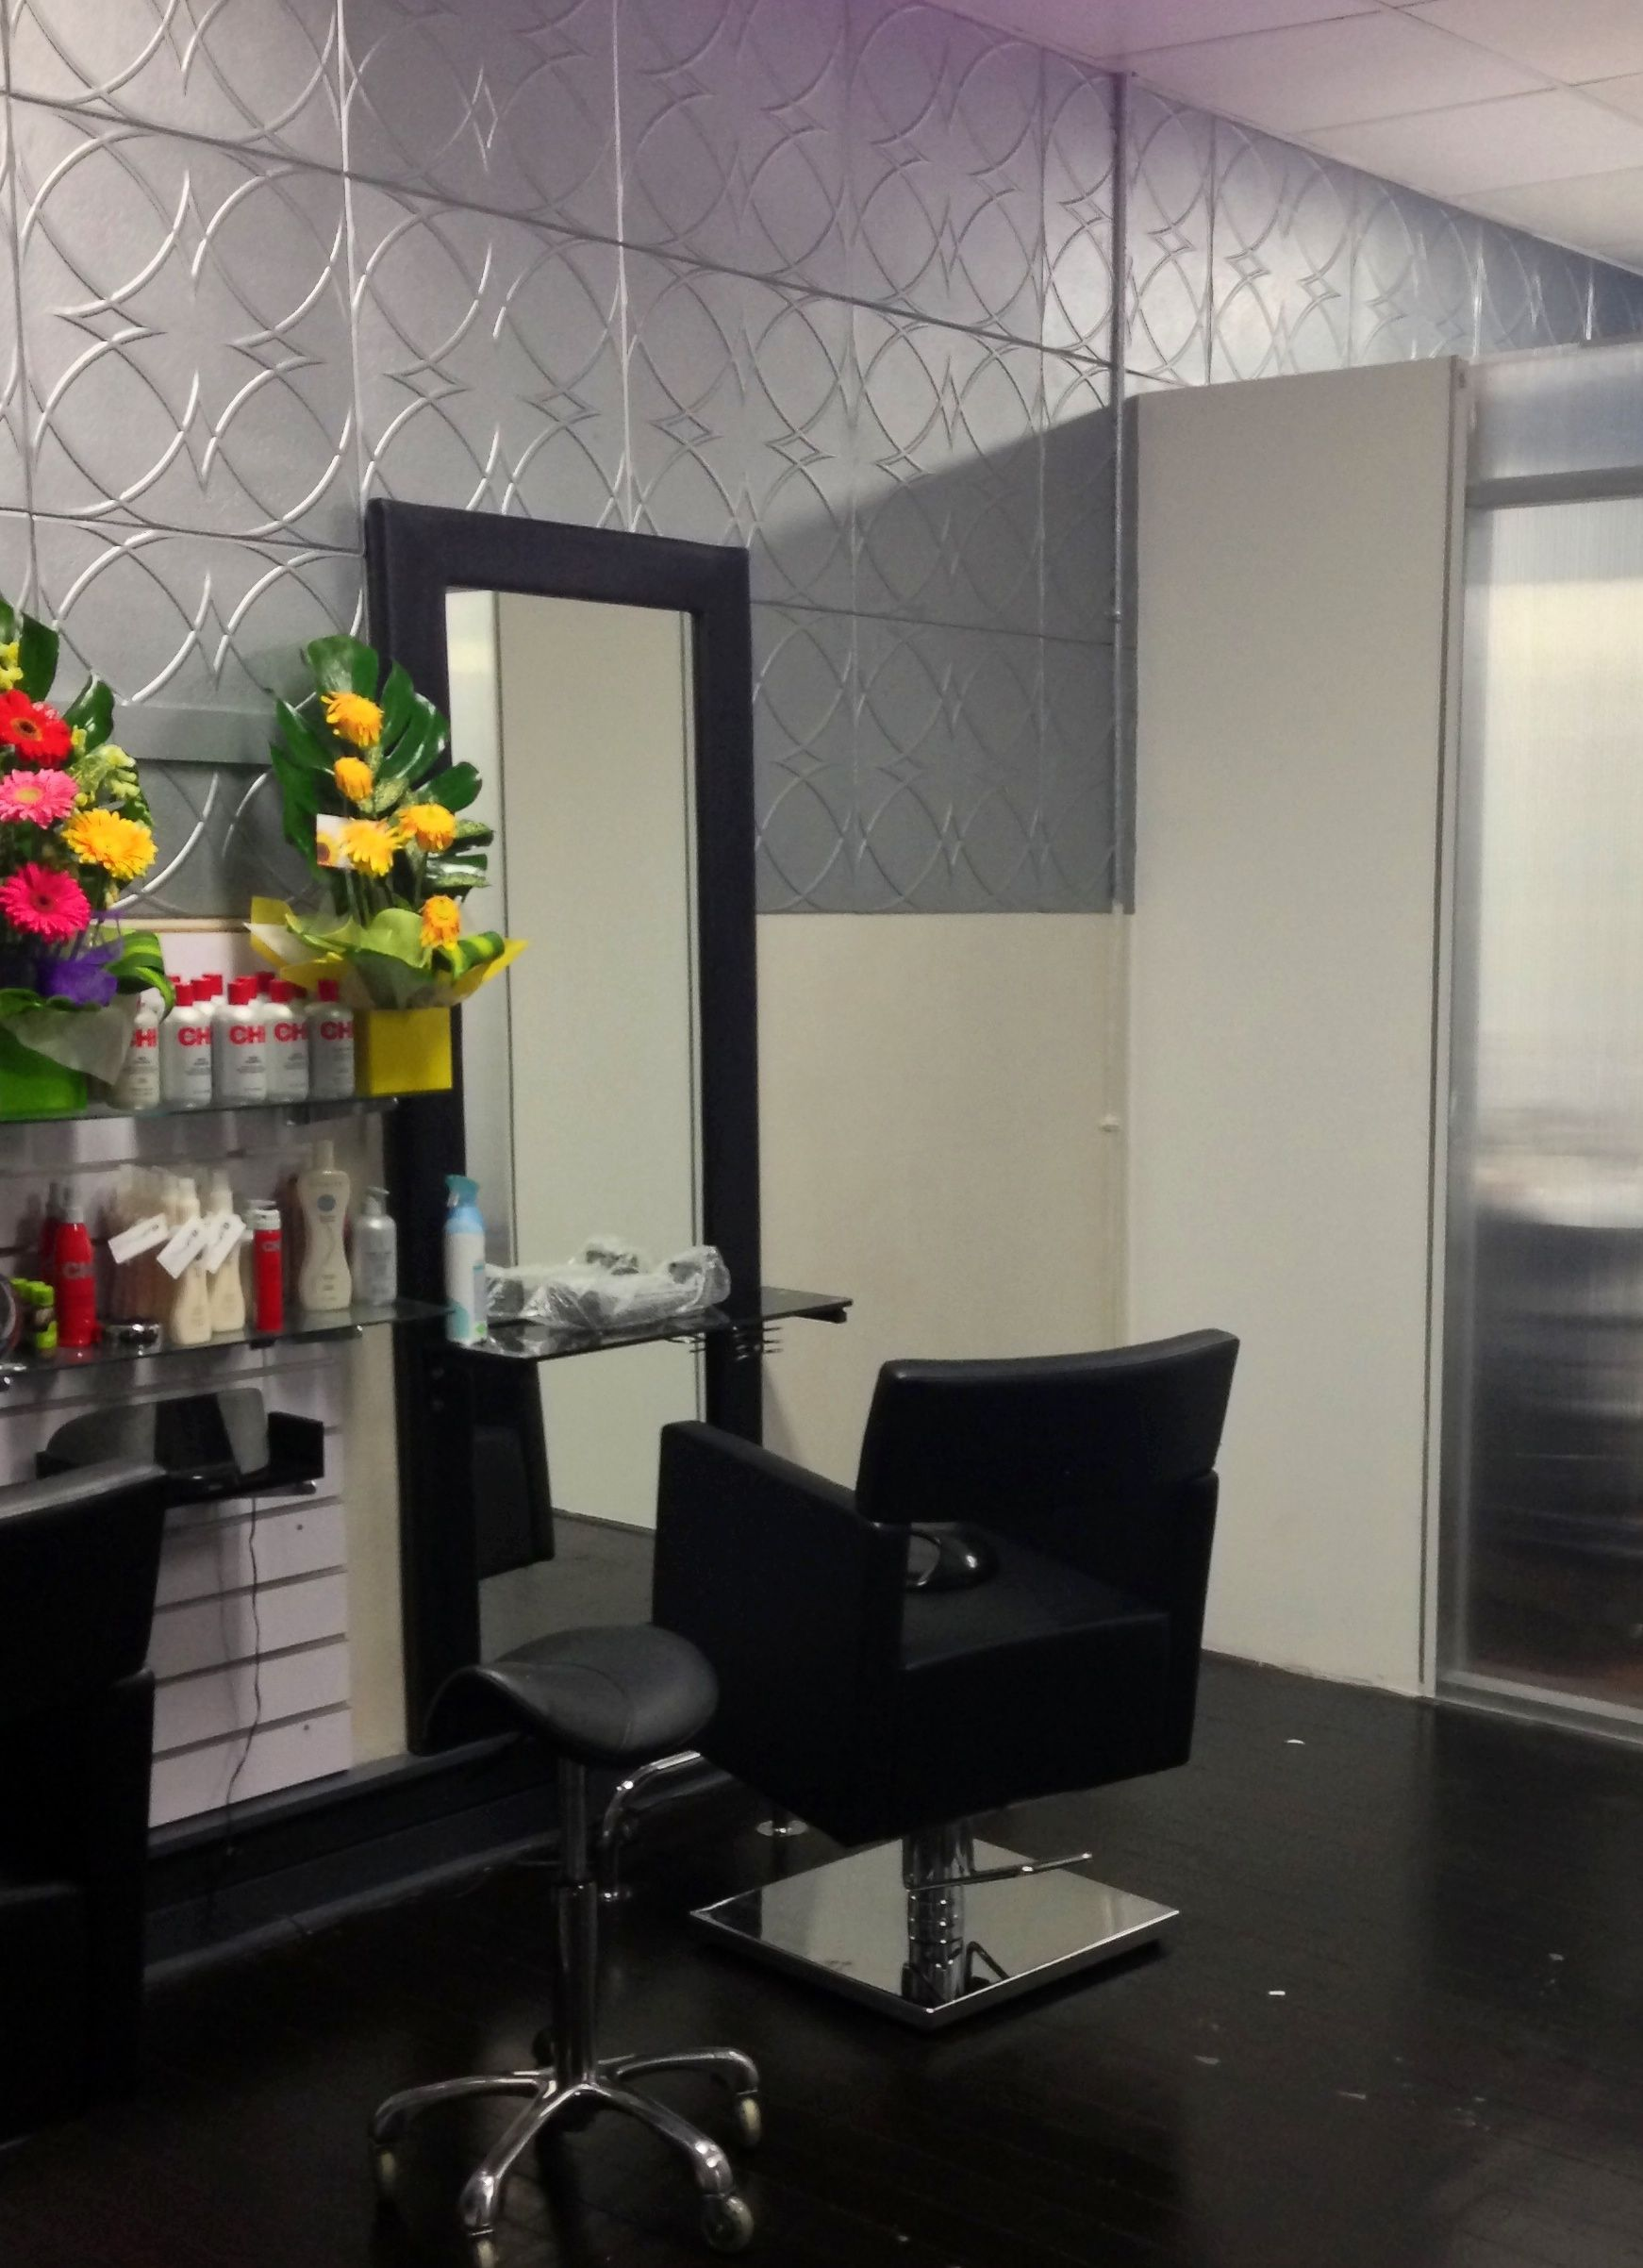 Natalie carson styled out tiles for hair embellish in perth natalie carson styled out tiles for hair embellish in perth western australia using r82 tiles dailygadgetfo Choice Image